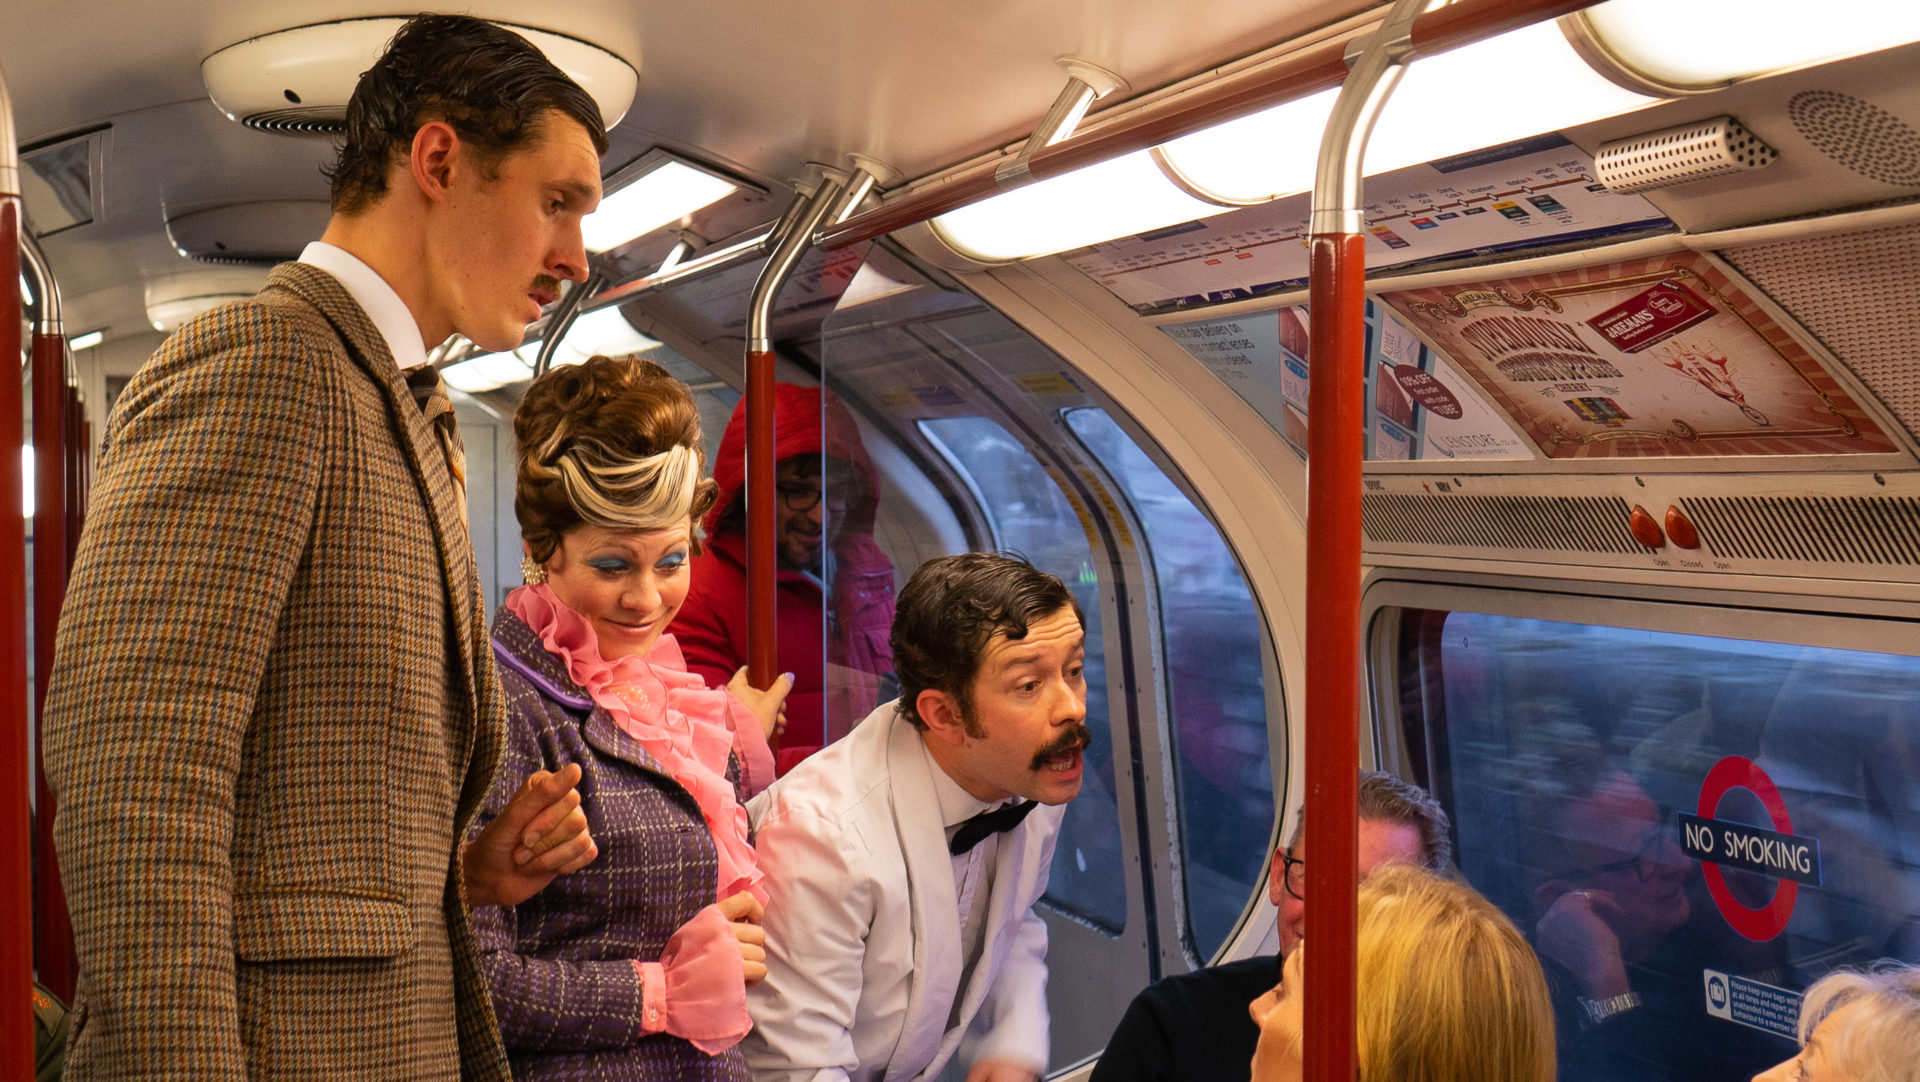 Faulty Towers - Havoc On the Bakerloo - Mellor&Smith